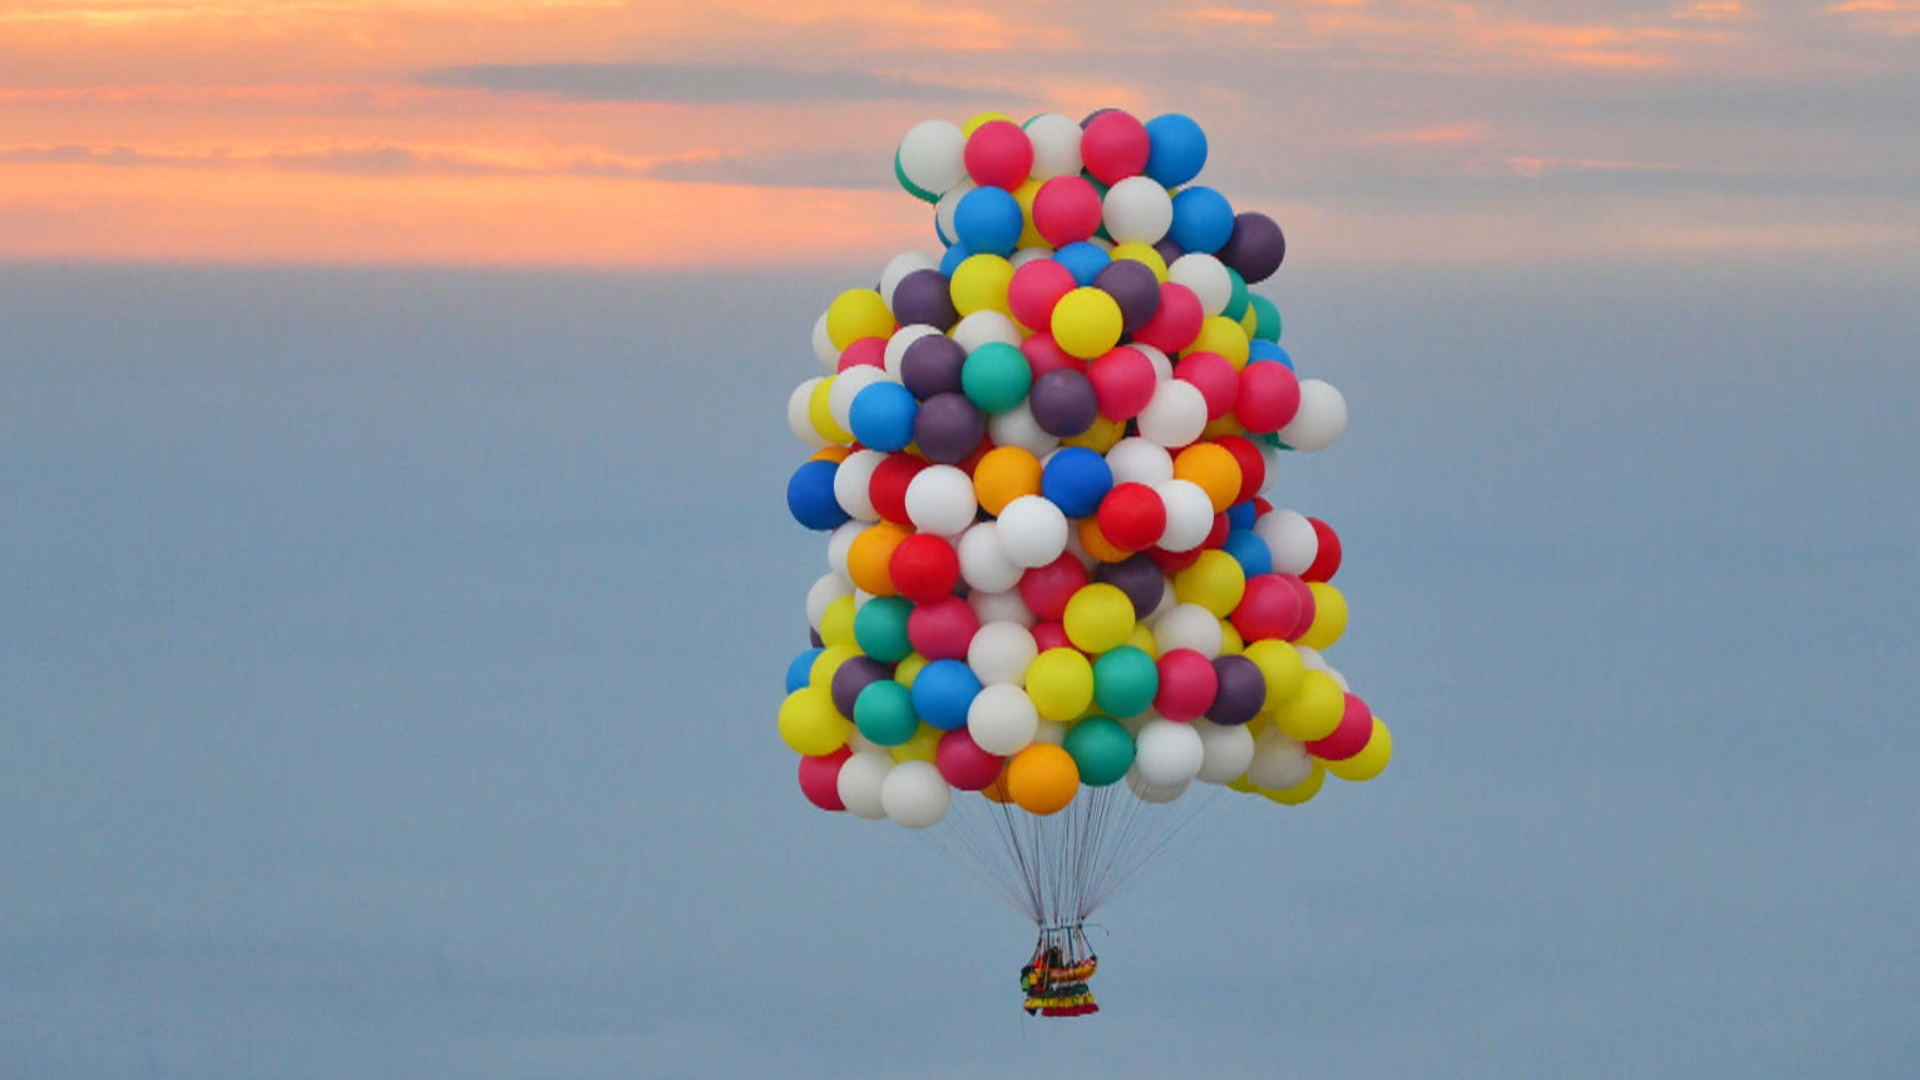 Up, up and away: Man tries flying with just balloons - NBC ...